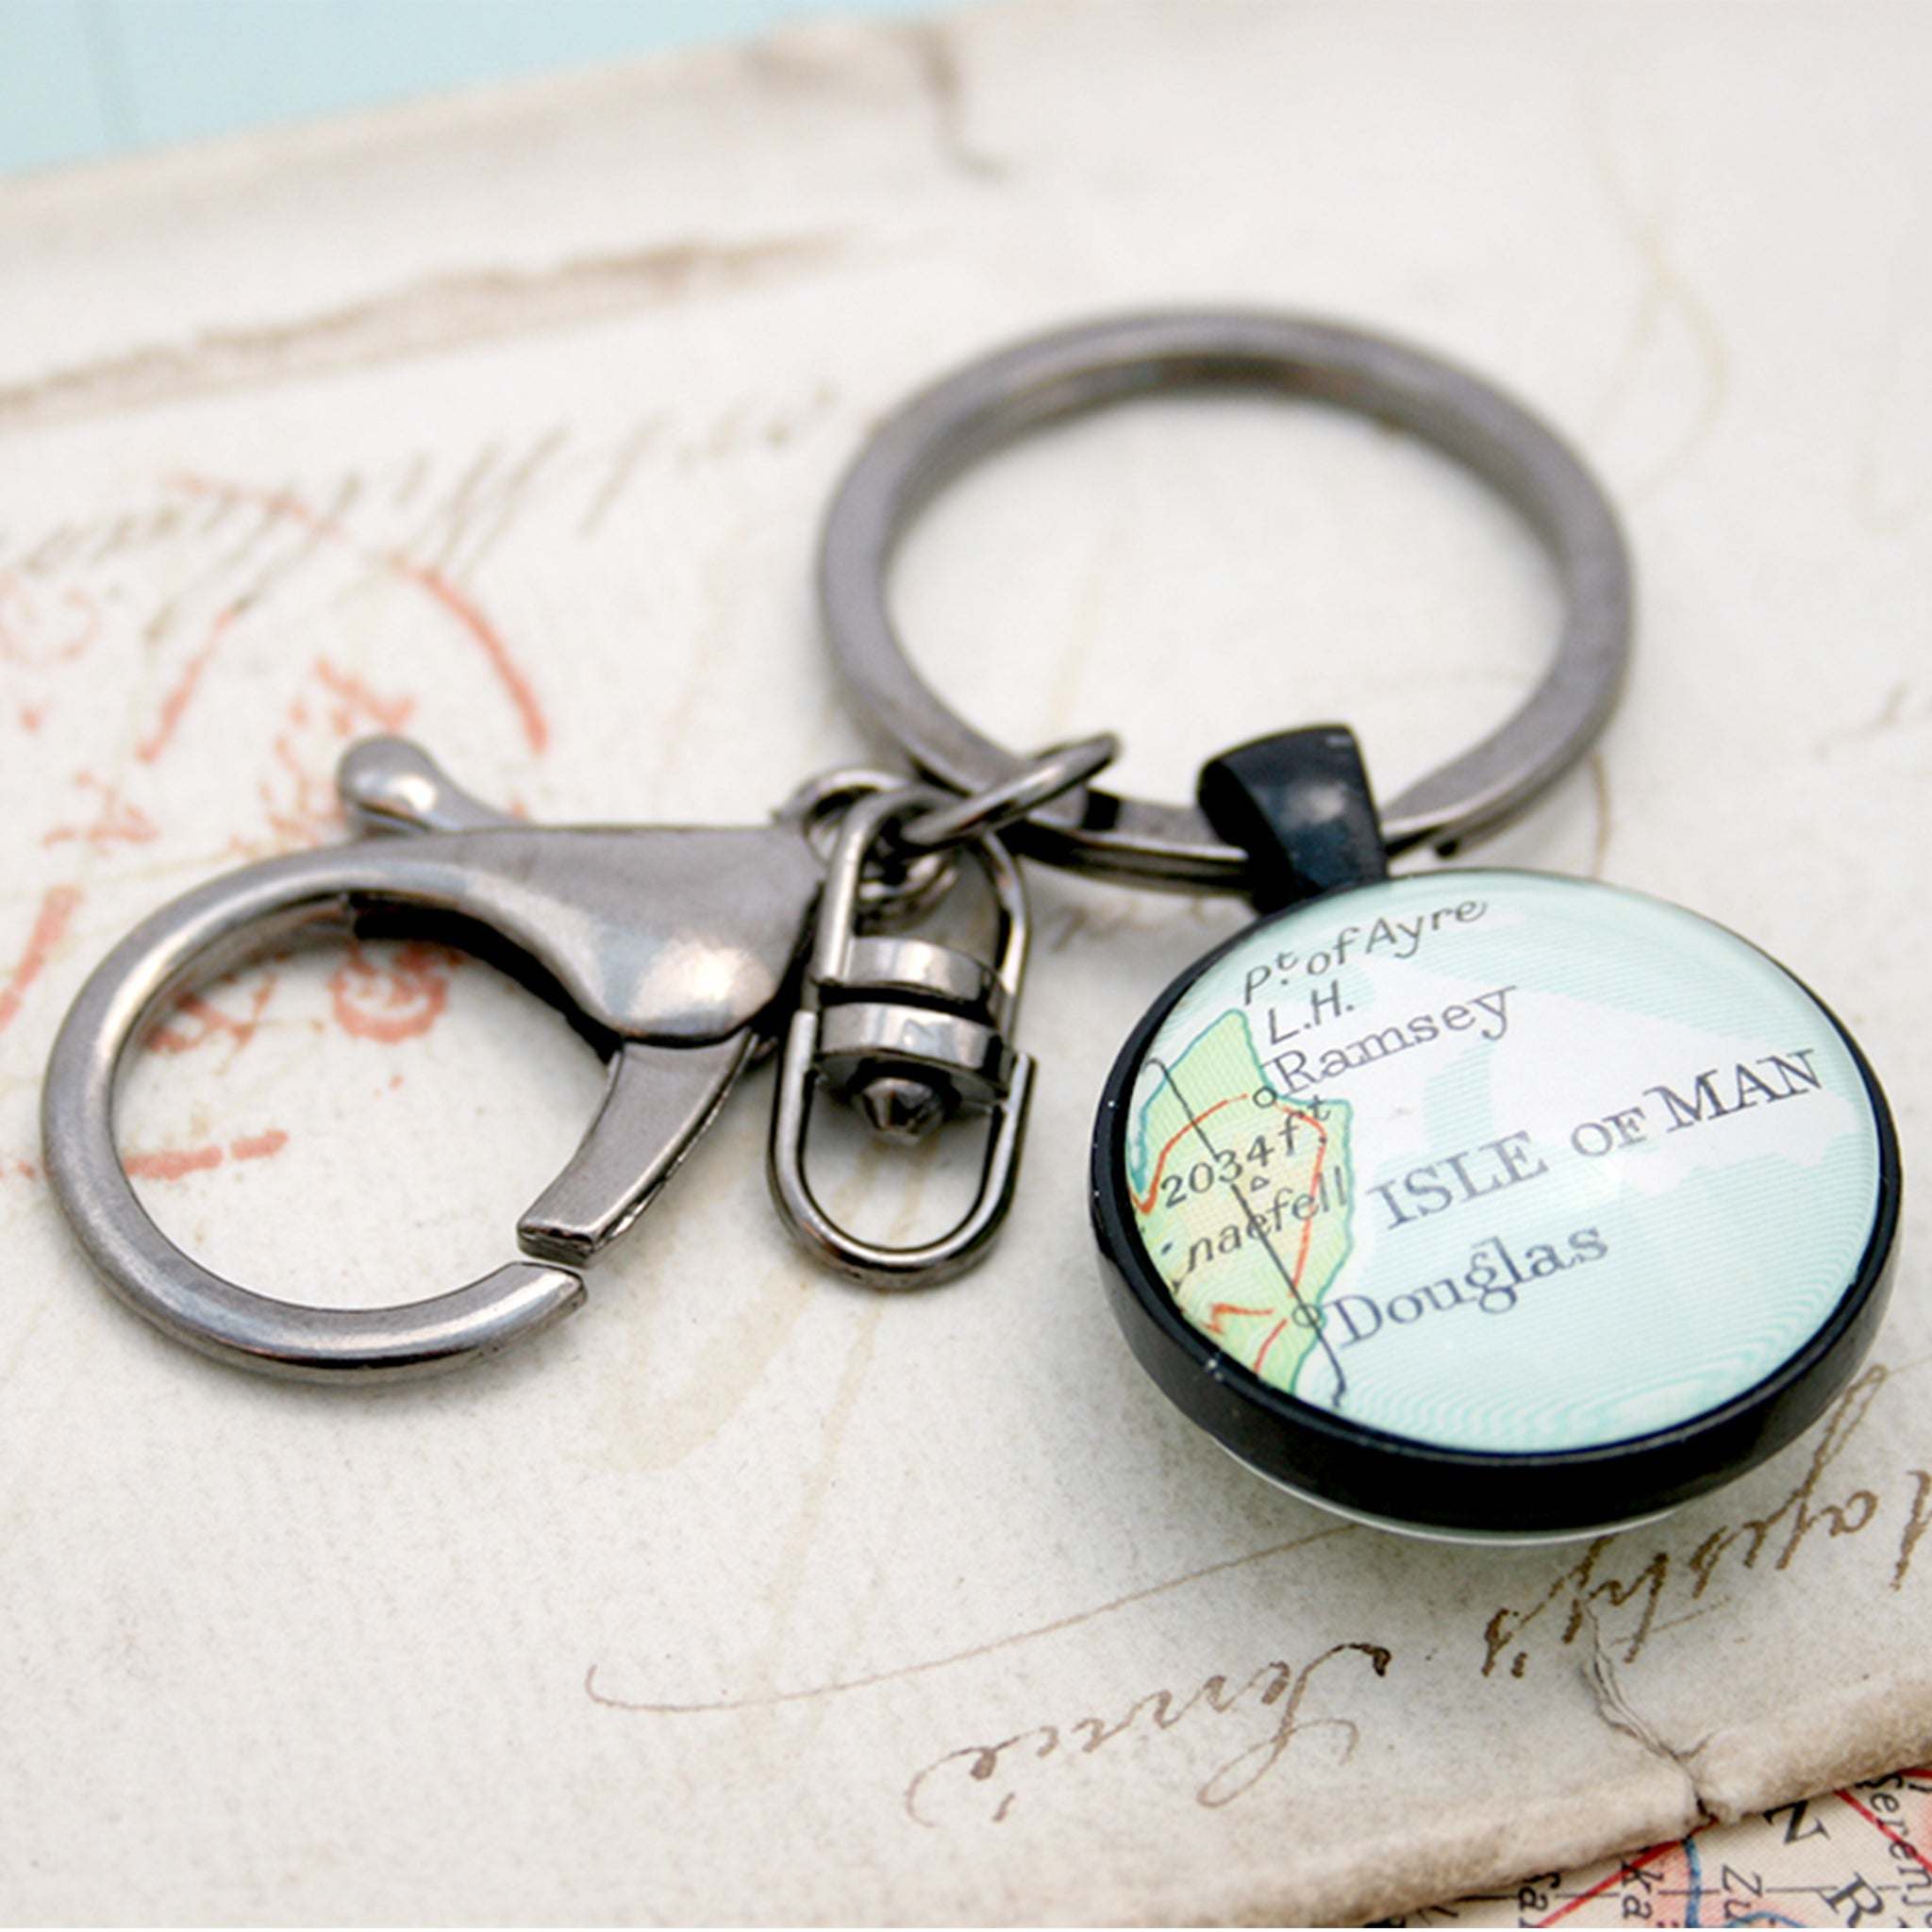 Personalised Keyring in black color featuring map of Isle of Man